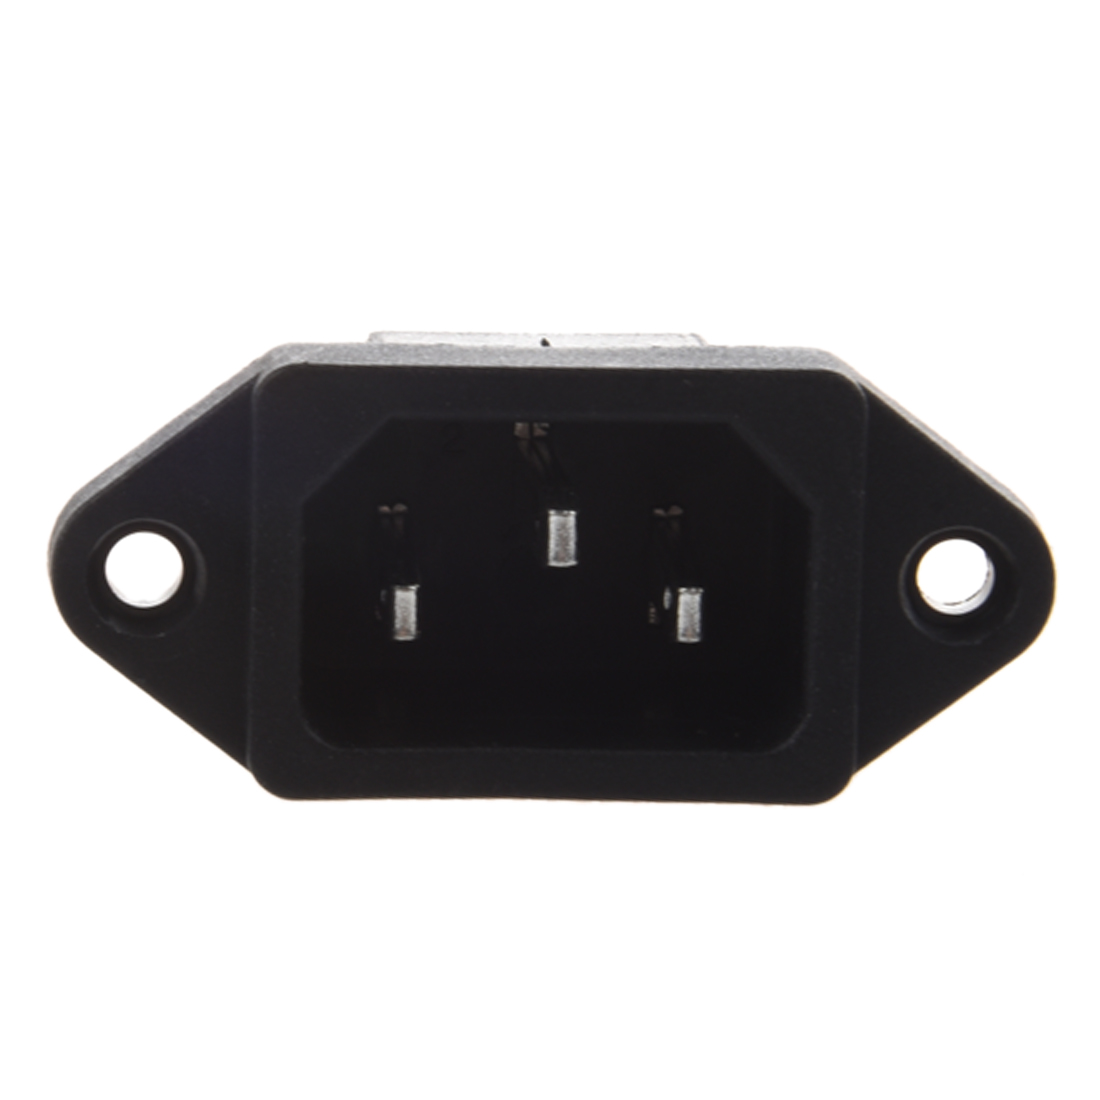 2018 YHYS - Hot IEC 320 C14 Male Plug 3 Pins PCB Screw Type Panel Power Inlet Socket Connector 1 Pc AC 250V 10A Plastic Metal